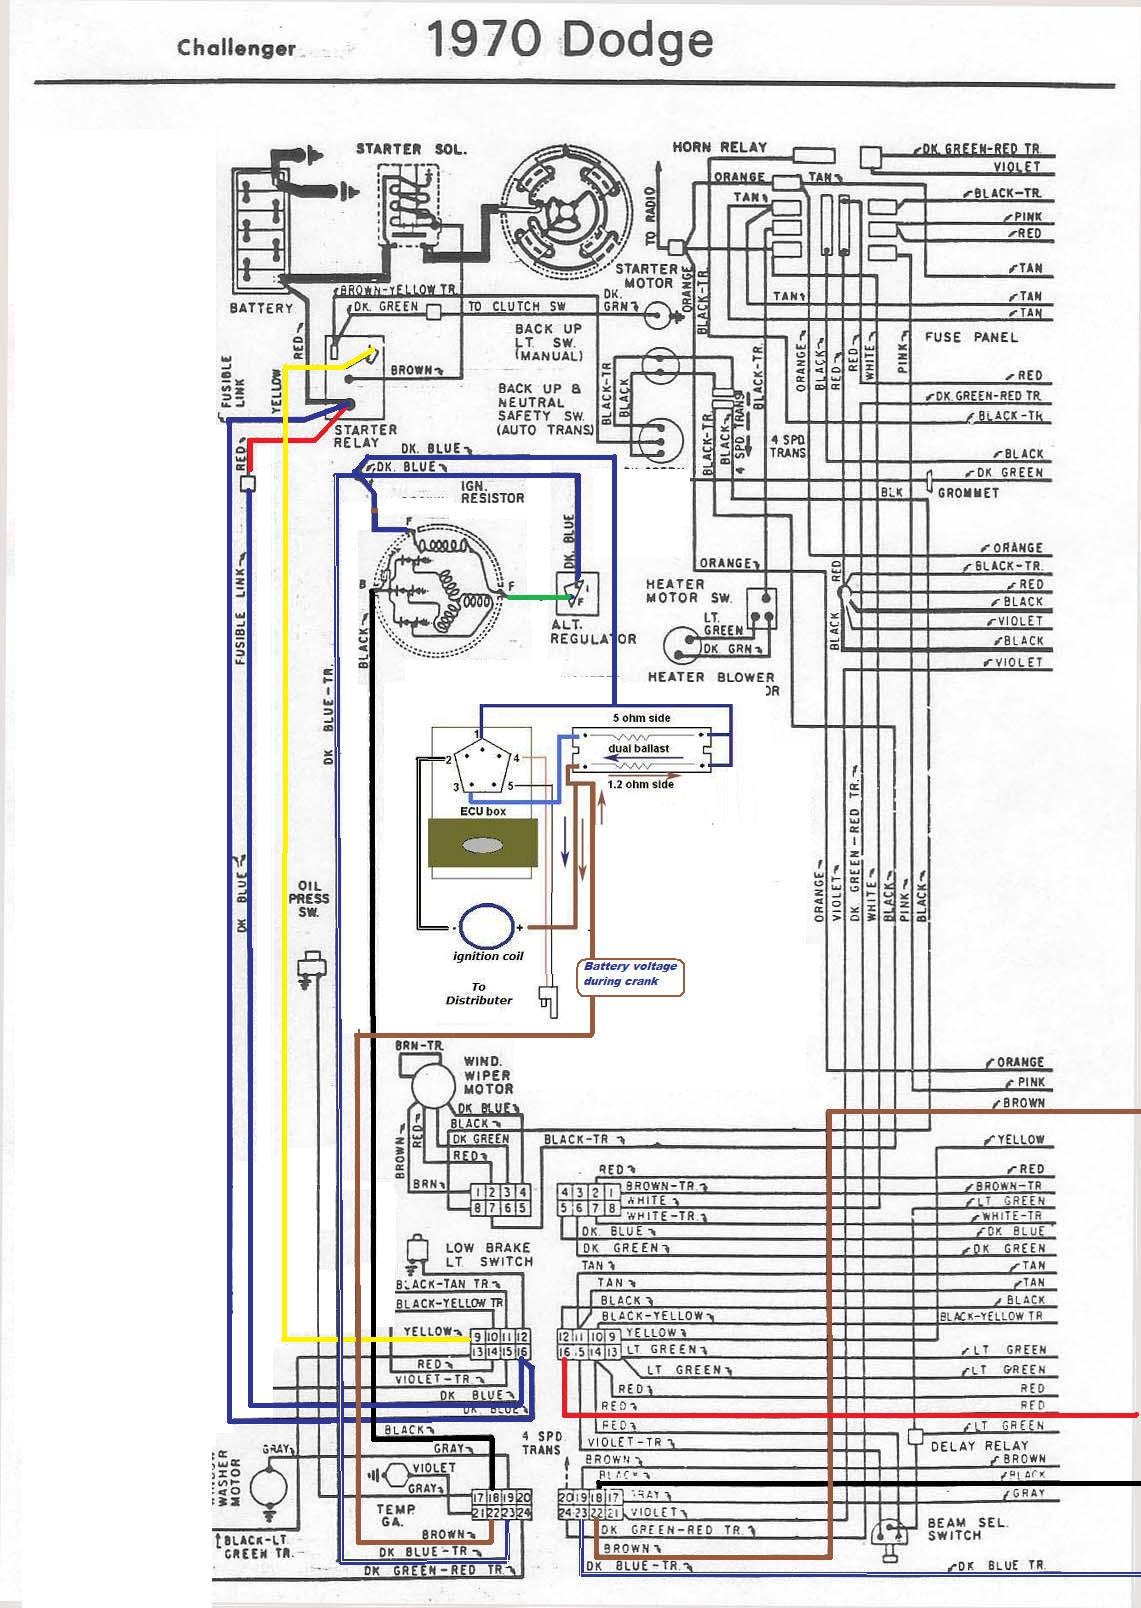 70 Challenger Wiring Diagram Online Manuual Of Mustang Dash Todays Rh 4 8 1813weddingbarn Com 1970 Dodge